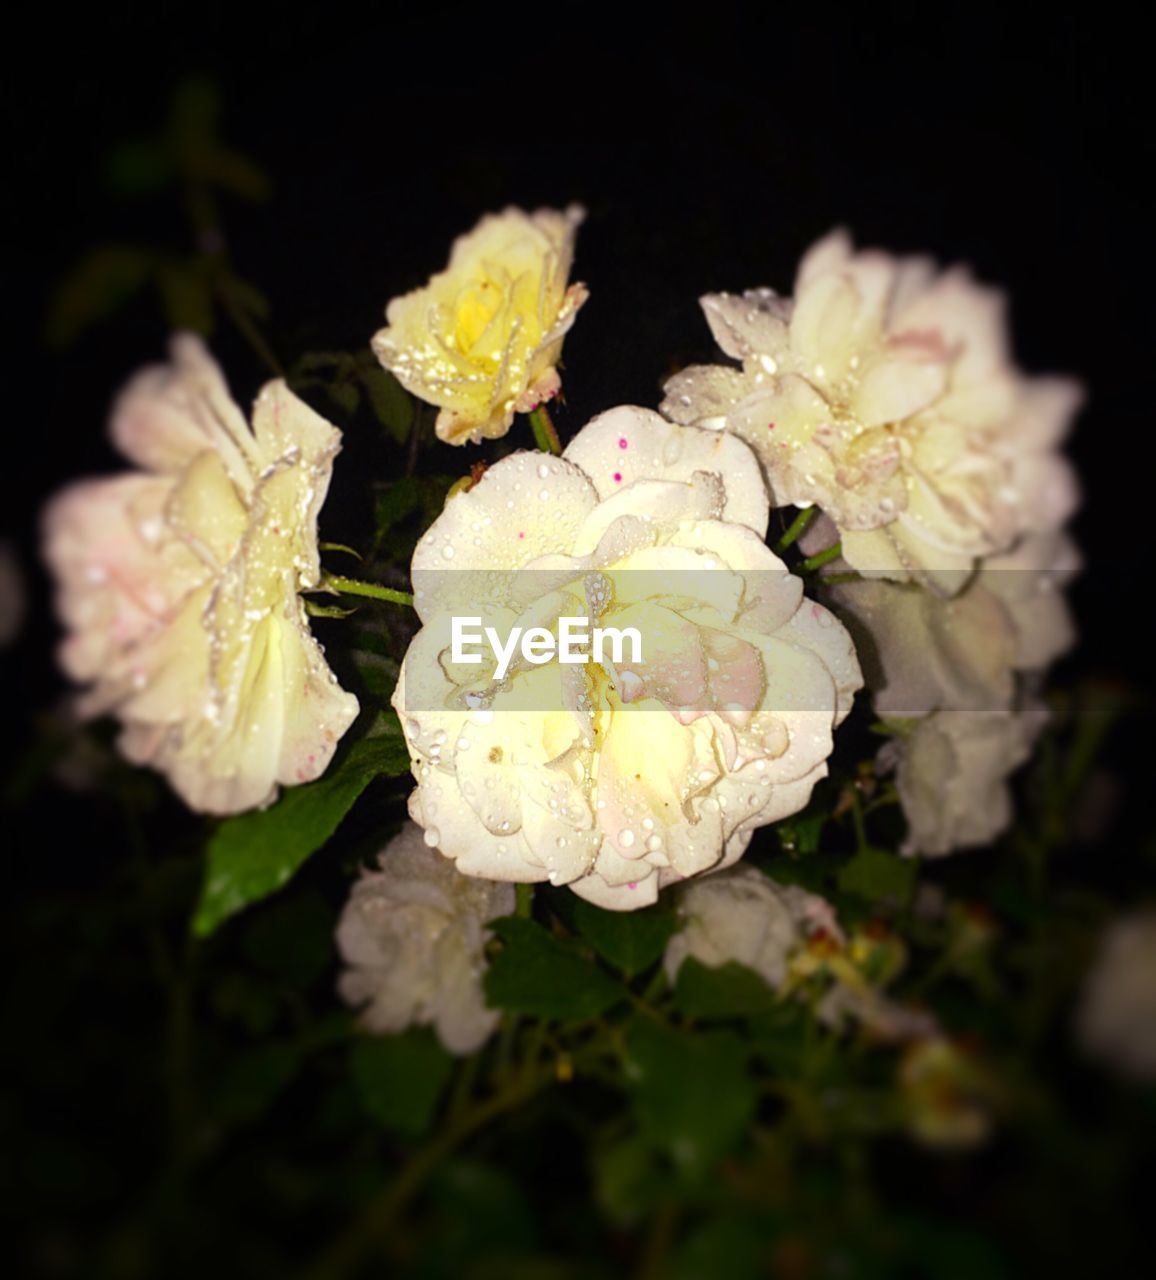 flower, petal, flower head, beauty in nature, rose - flower, nature, growth, fragility, close-up, plant, no people, freshness, blooming, outdoors, day, animal themes, black background